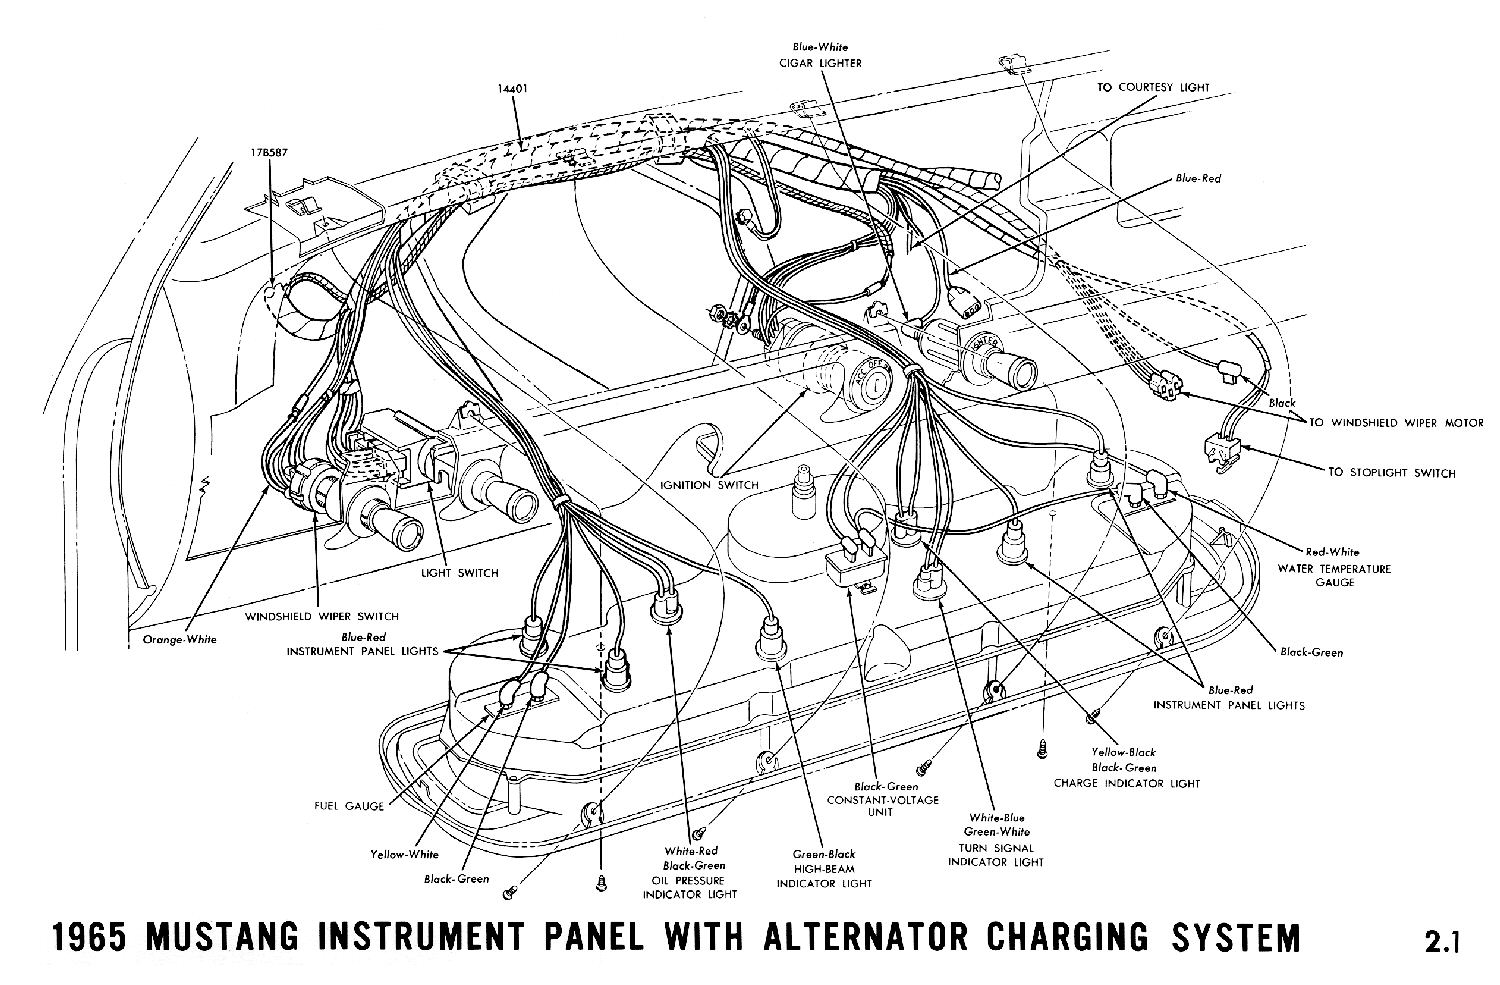 hight resolution of 1965 mustang wiring diagrams average joe restoration 65 mustang wiring diagram 65 mustang wiring diagram